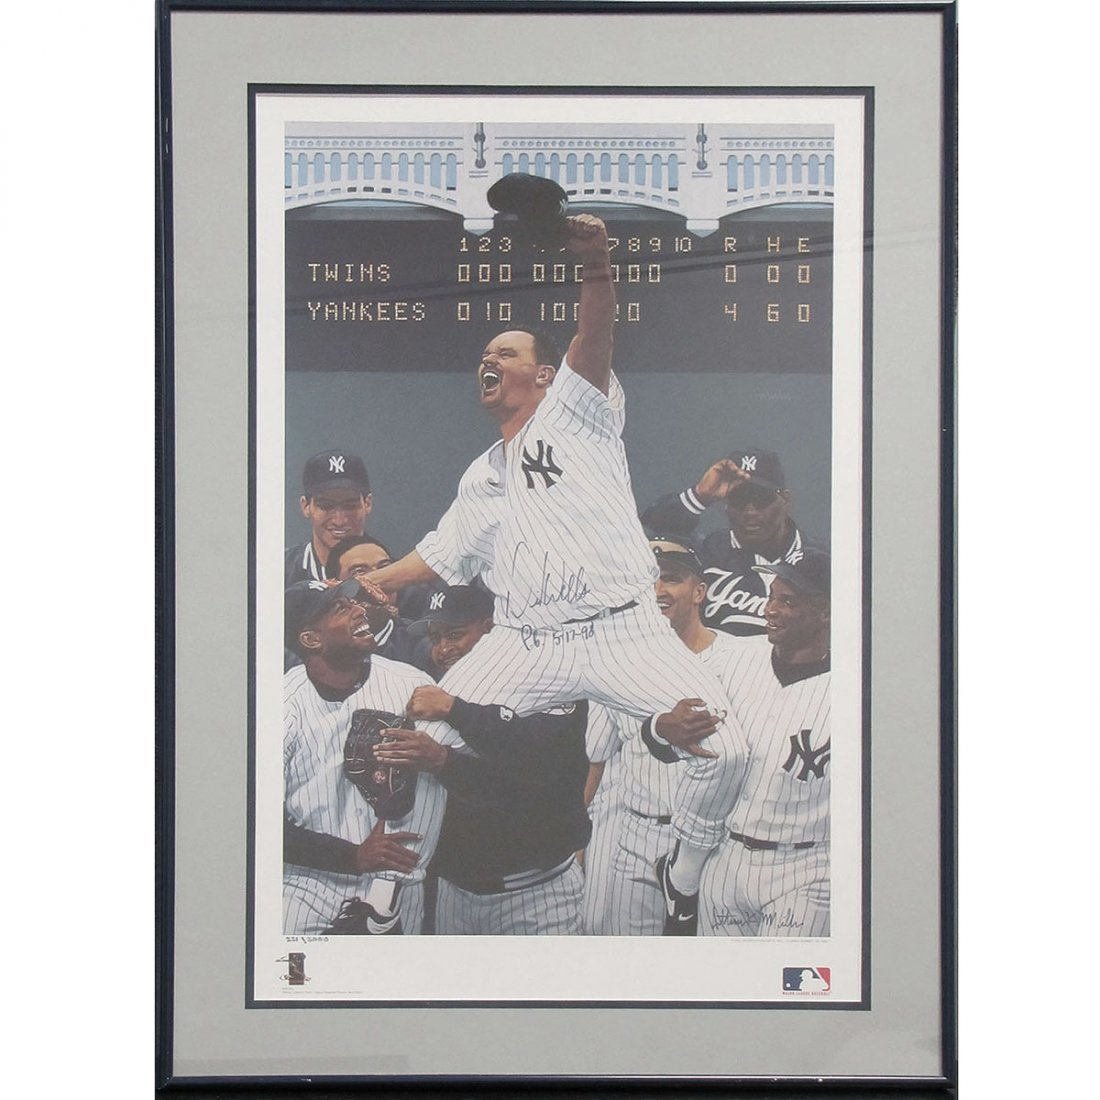 16: DAVID WELLS AUTOGRAPHED LIMITED EDITION POSTER